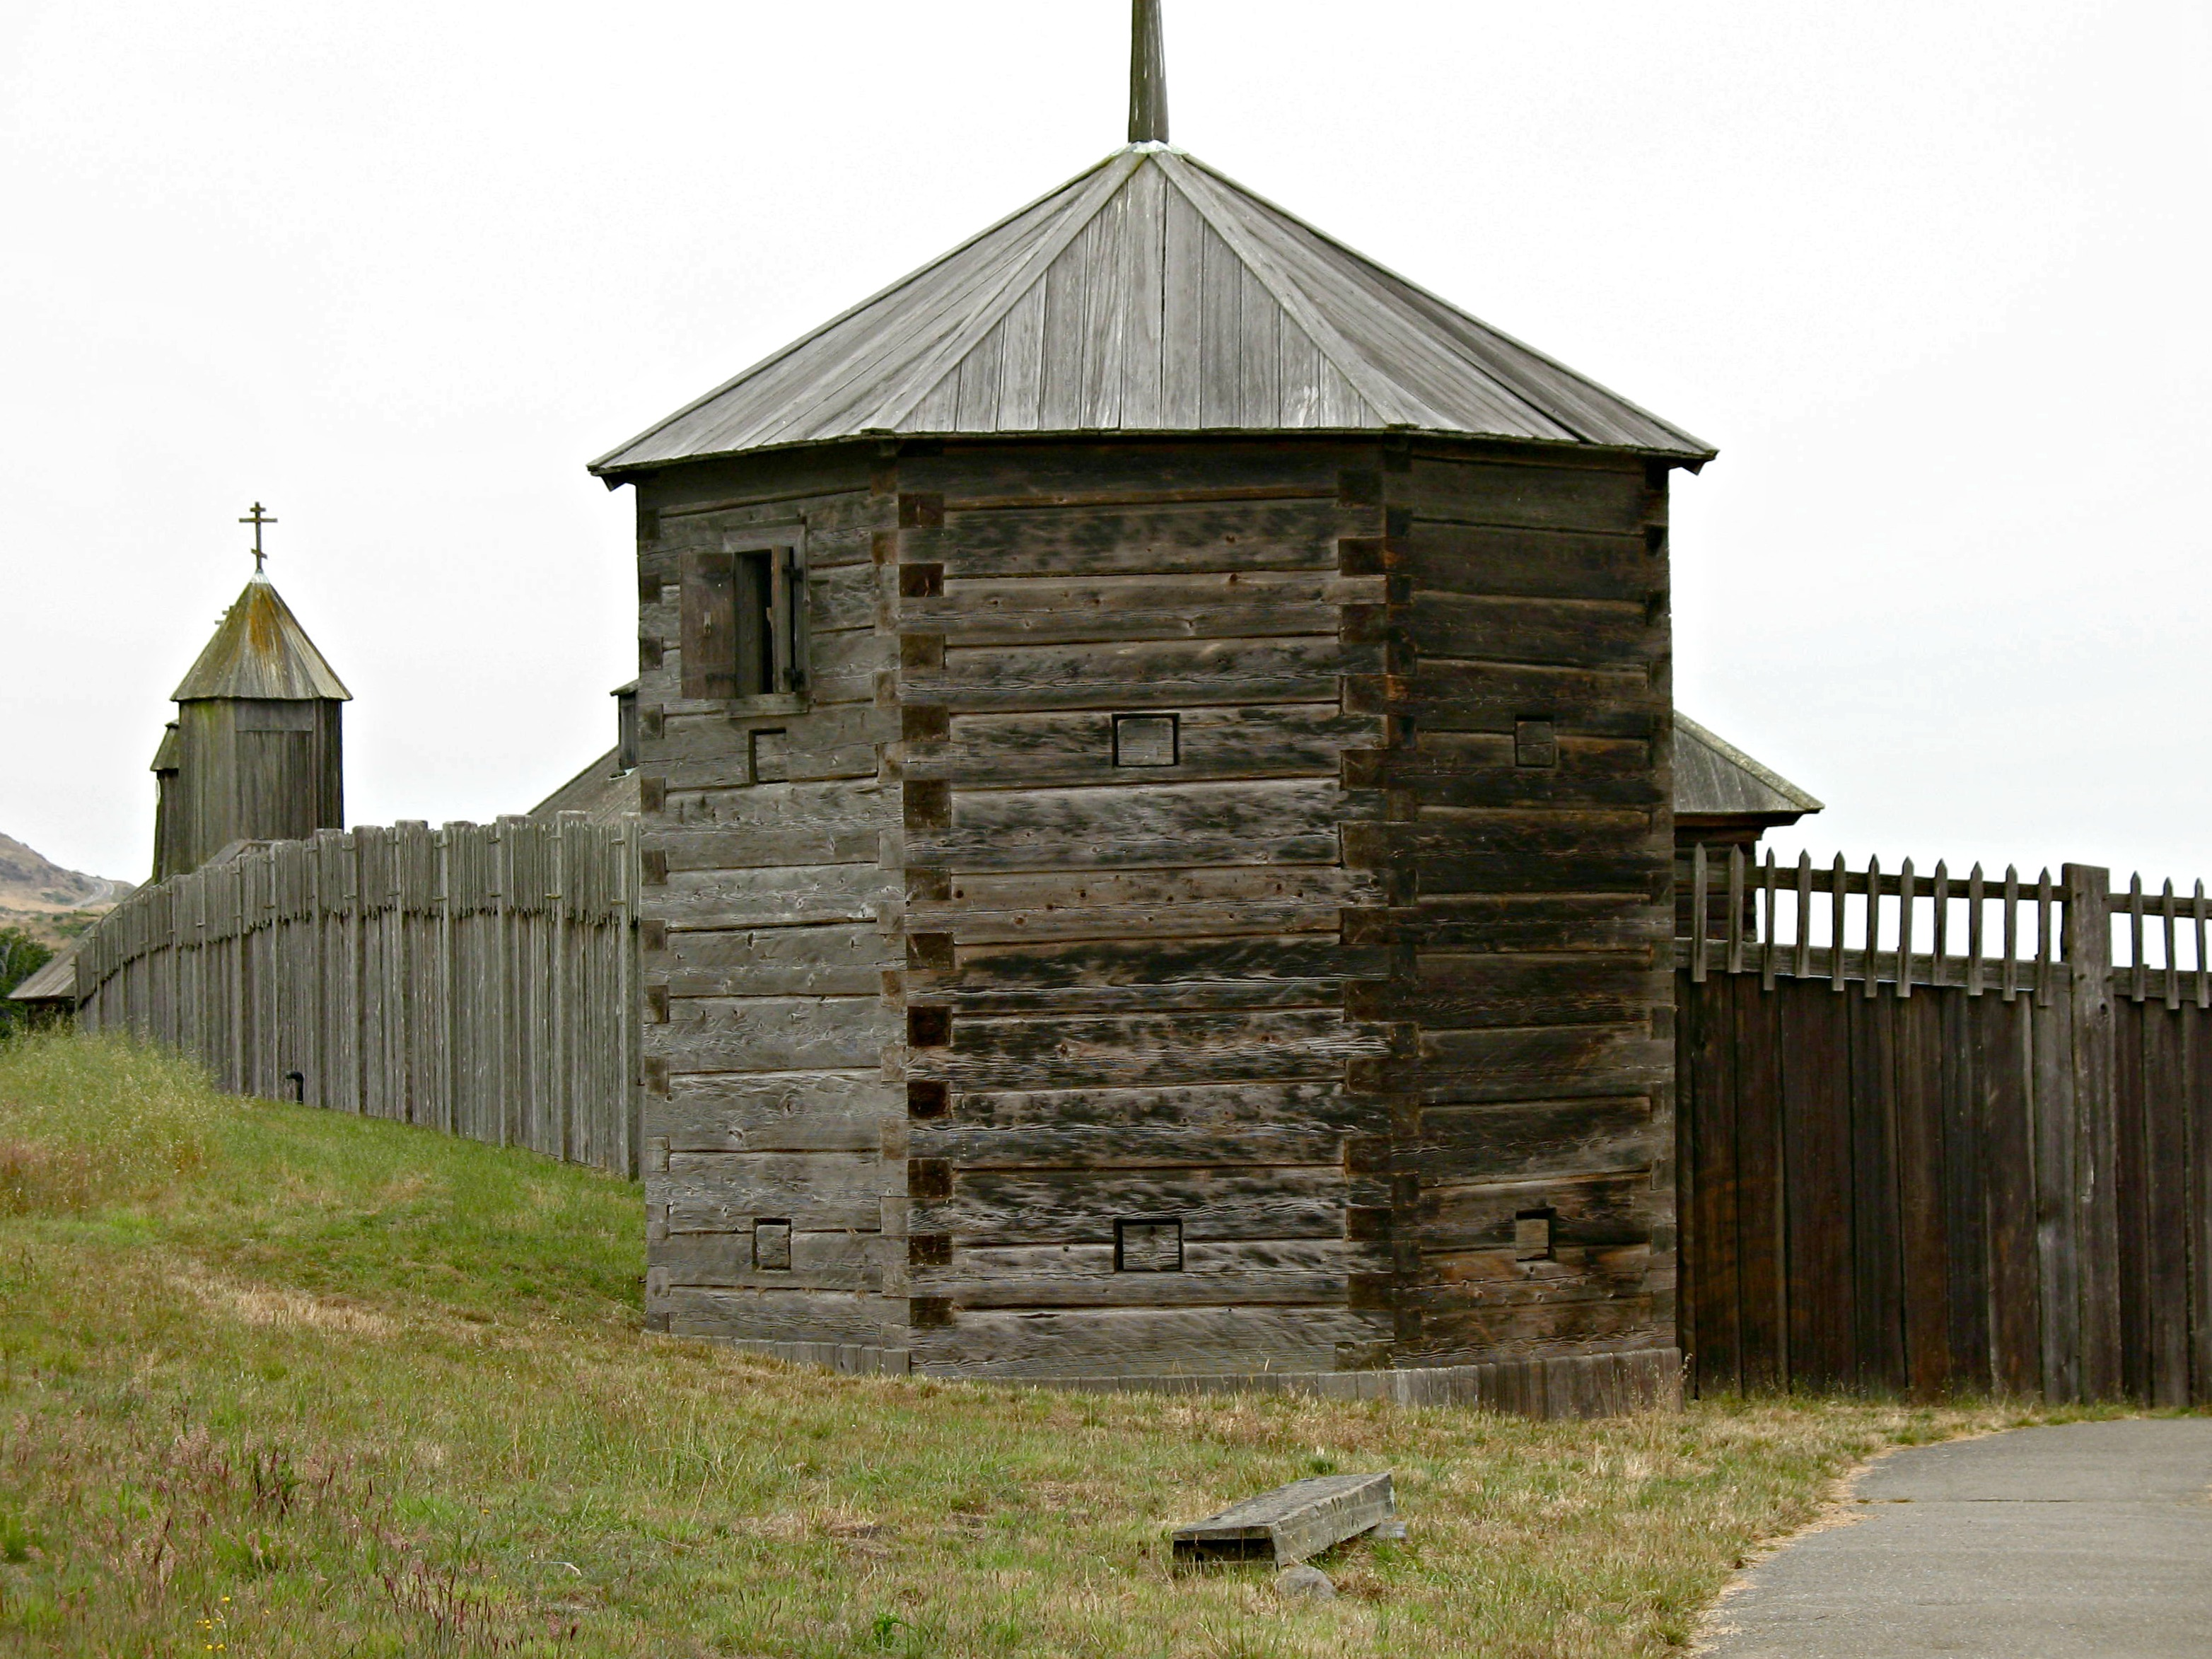 File:Wooden fort.JPG - Wikimedia Commons